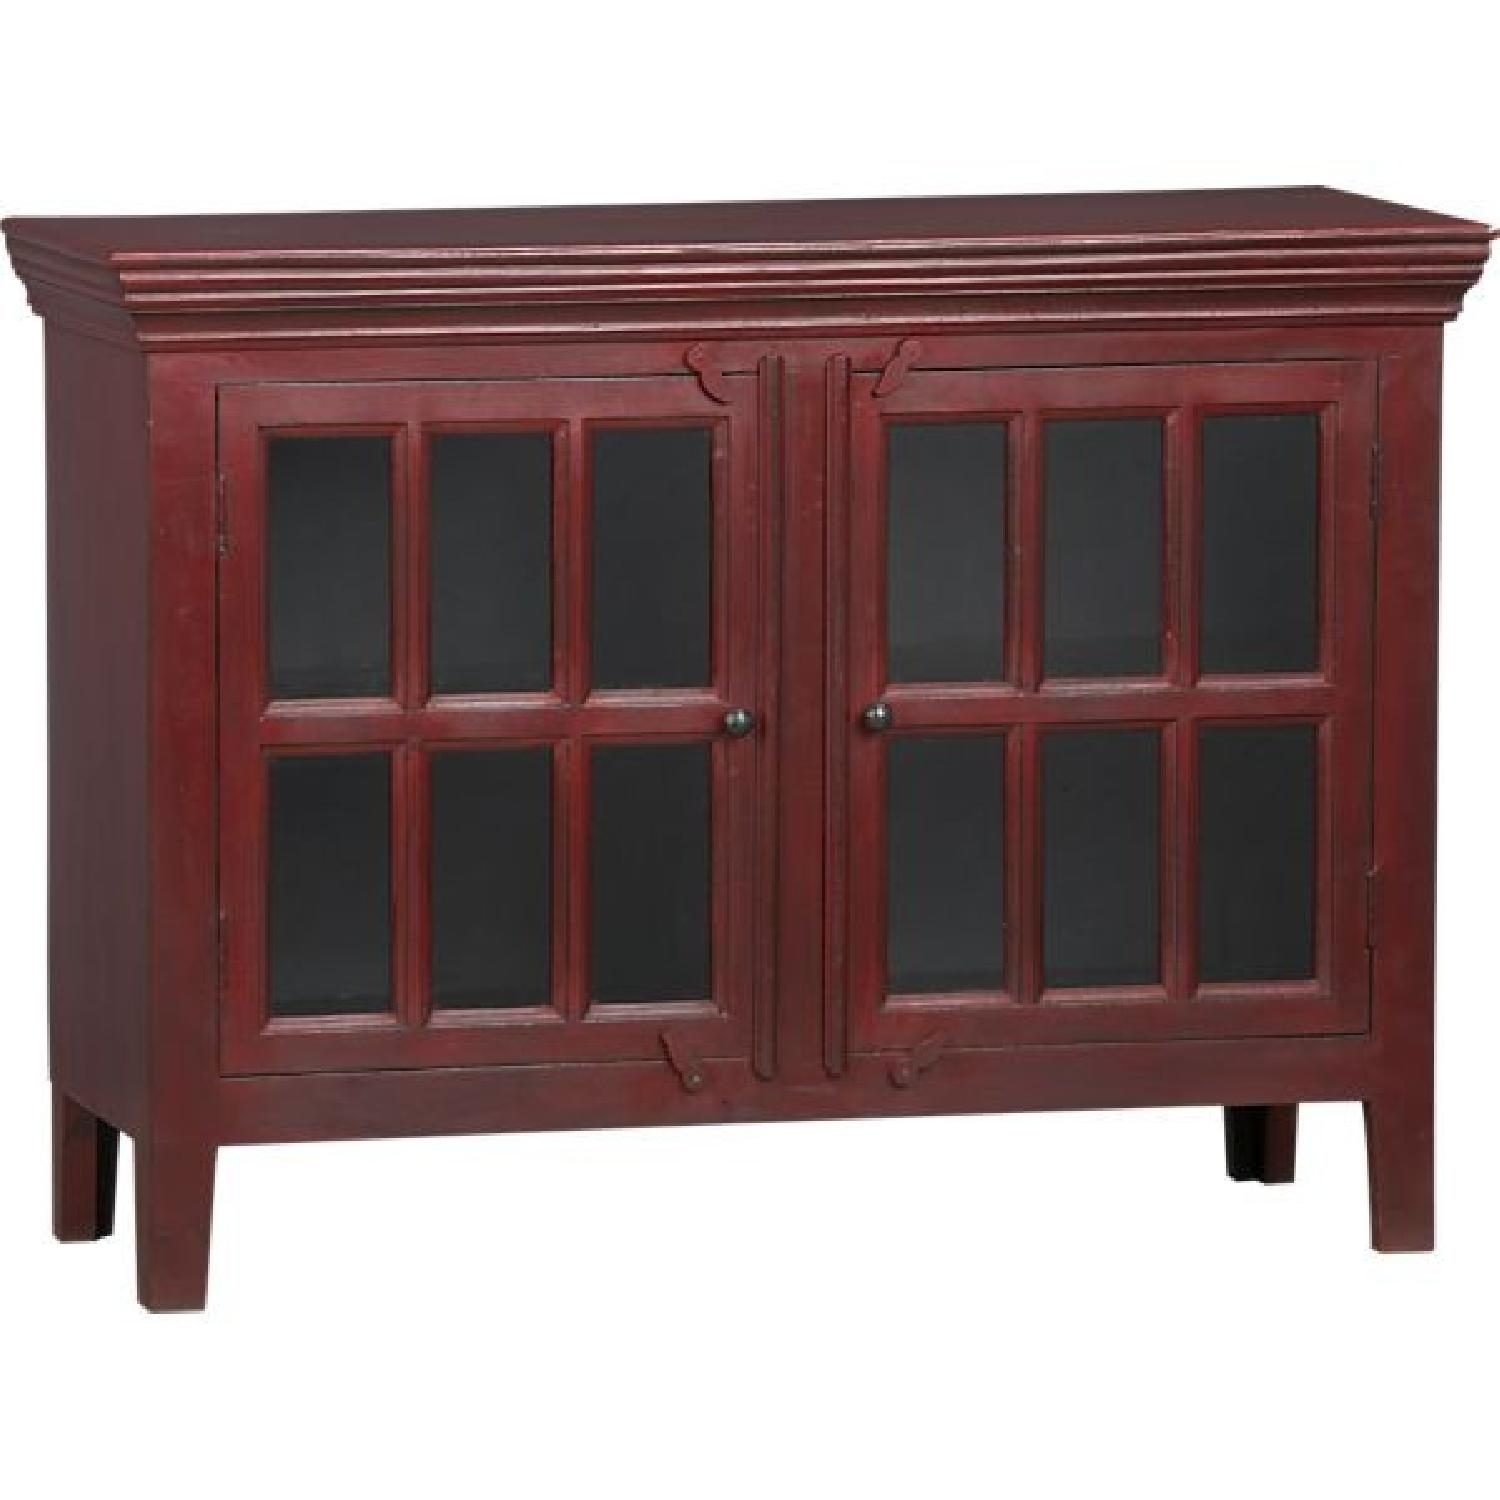 Crate & Barrel Rojo Red Media Storage Cabinet